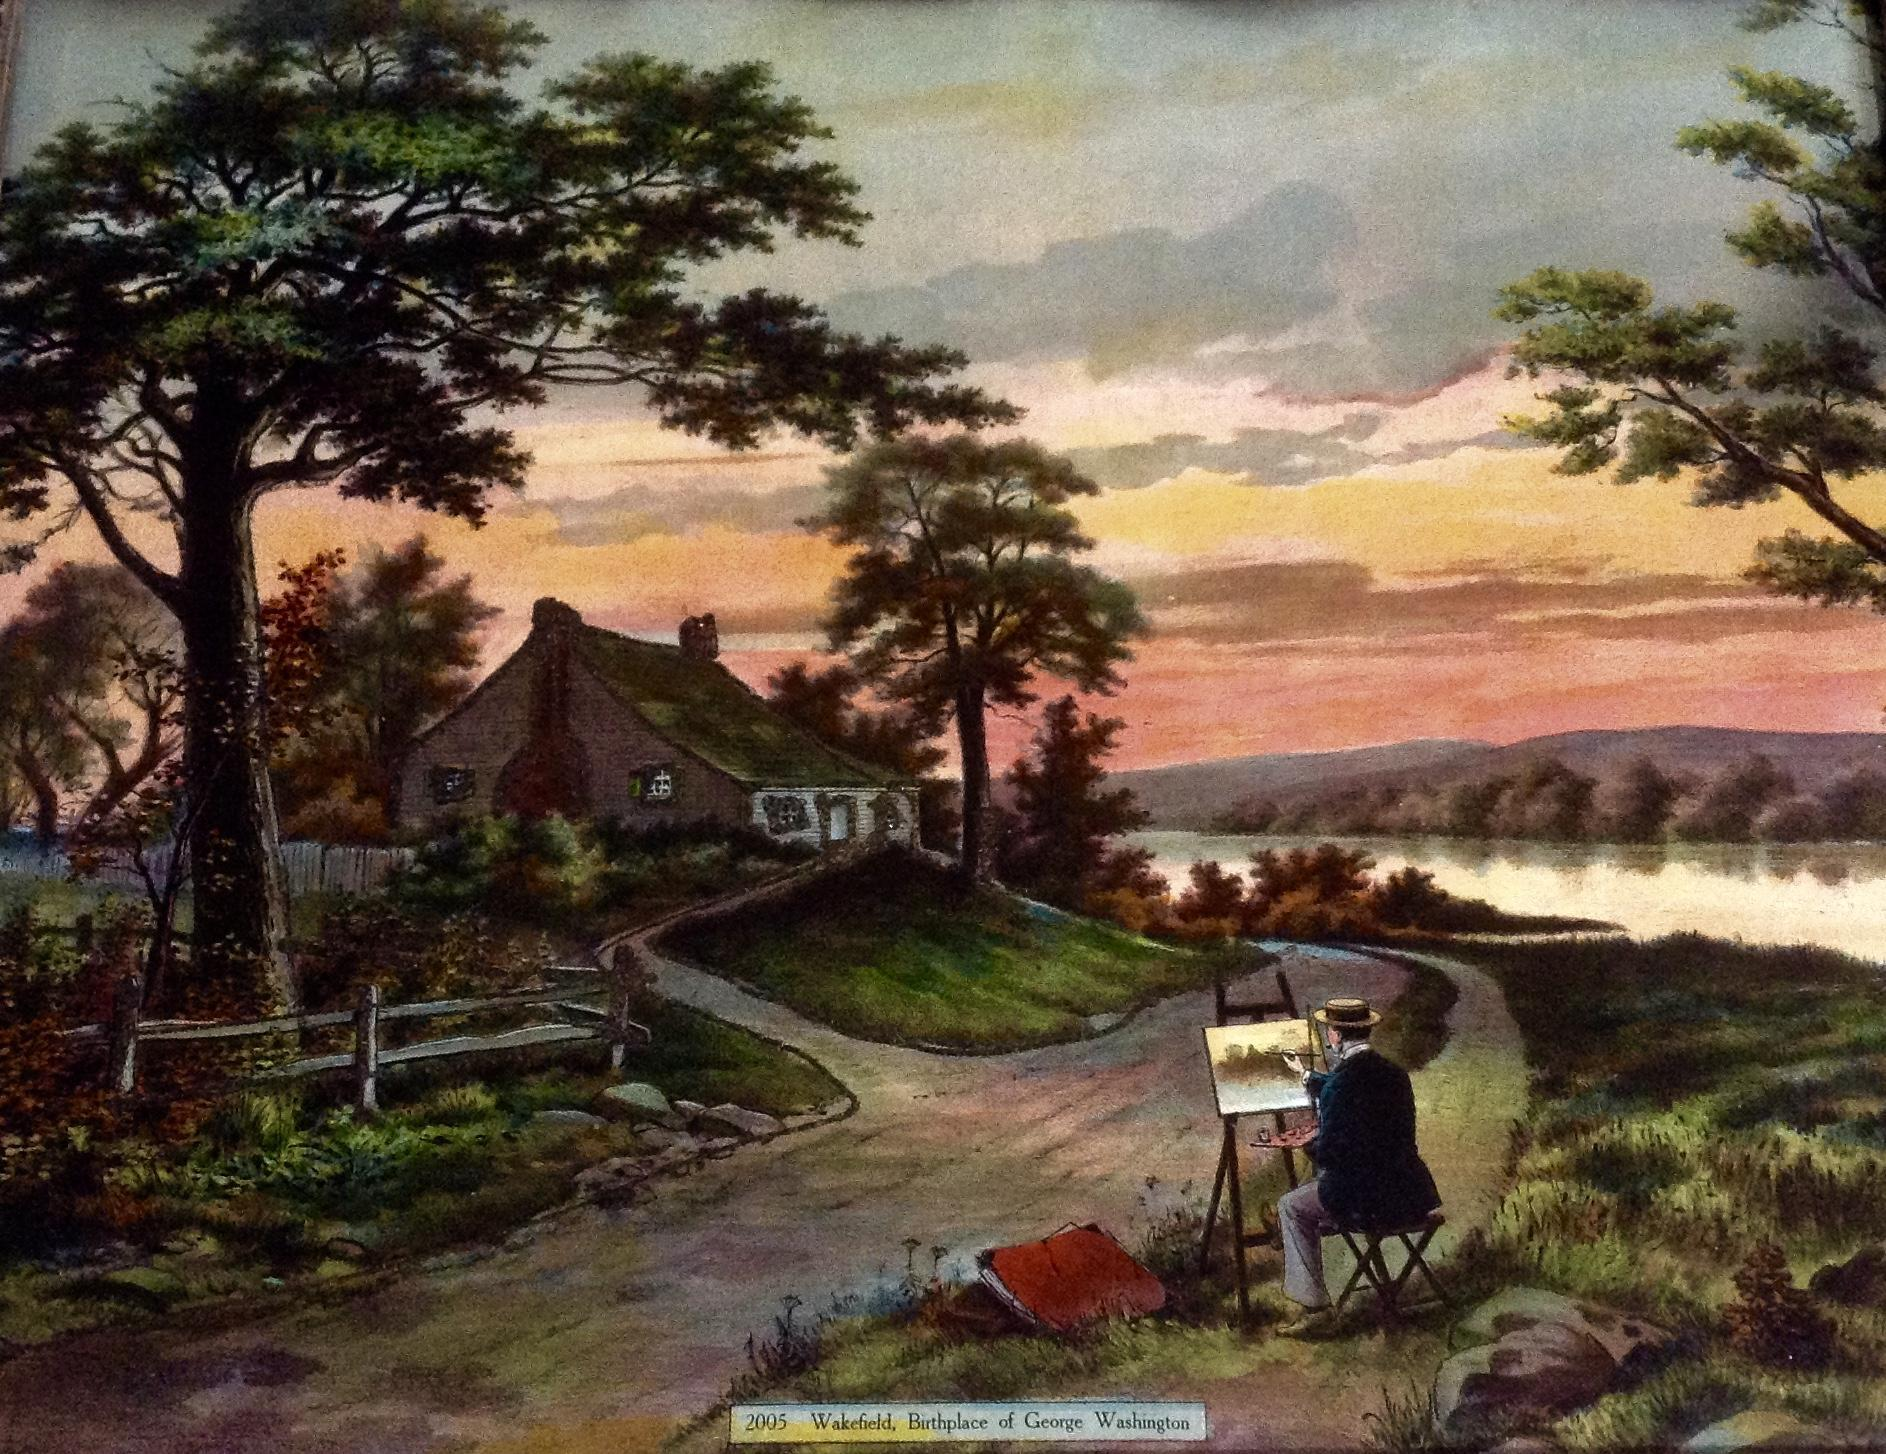 wakefield birthplace of george washington popes creek from